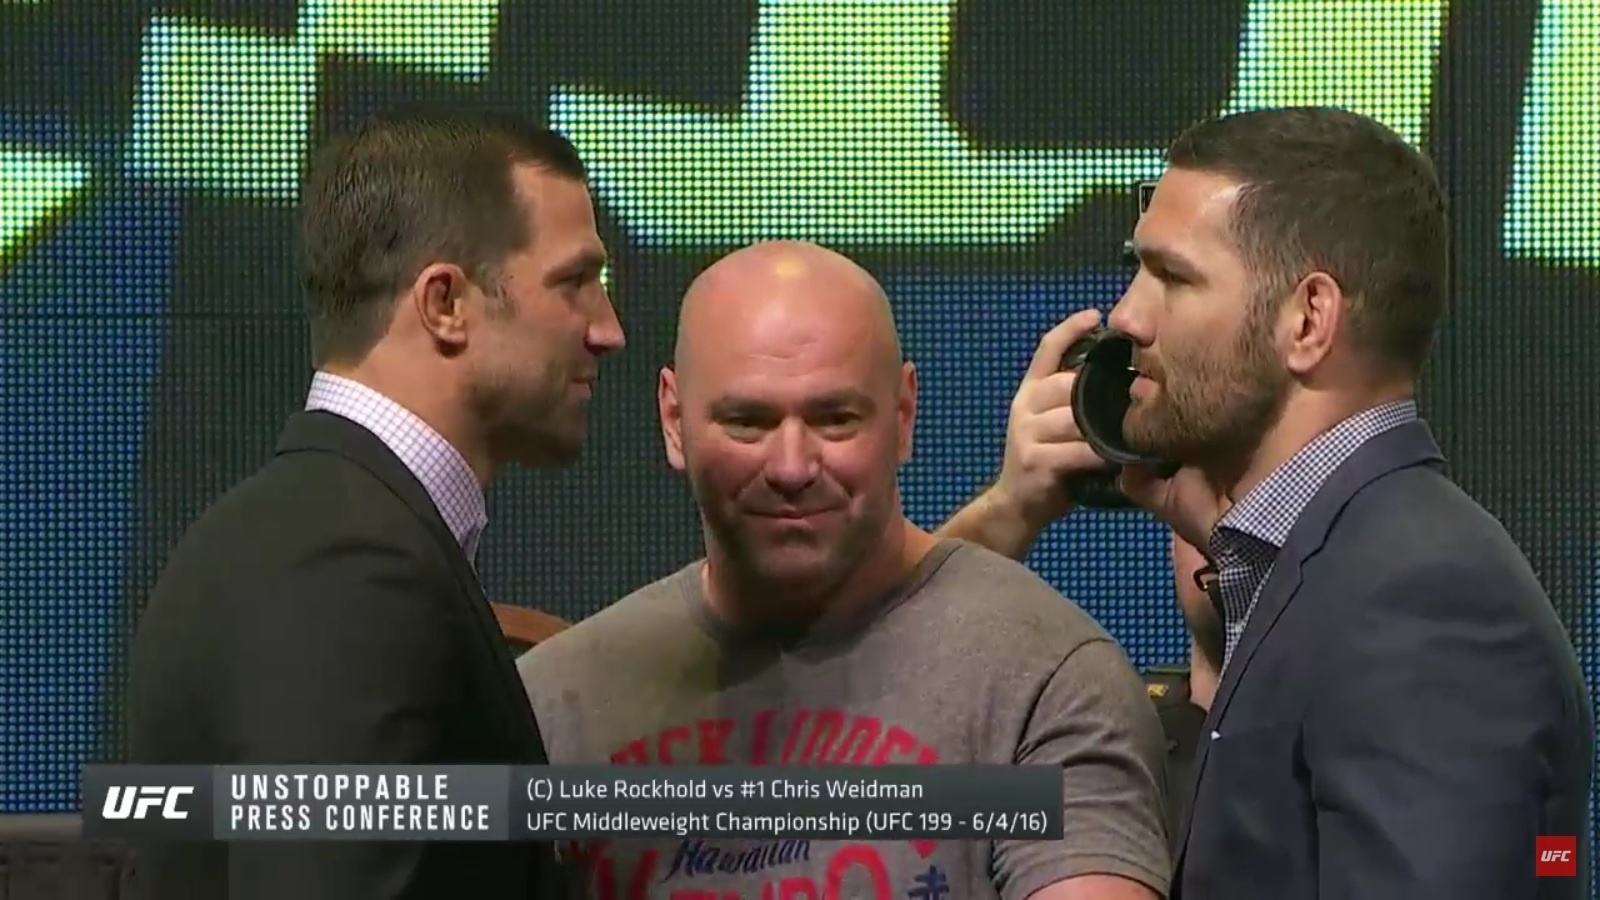 Luke Rockhold e Chris Weidman se encaram em evento do UFC